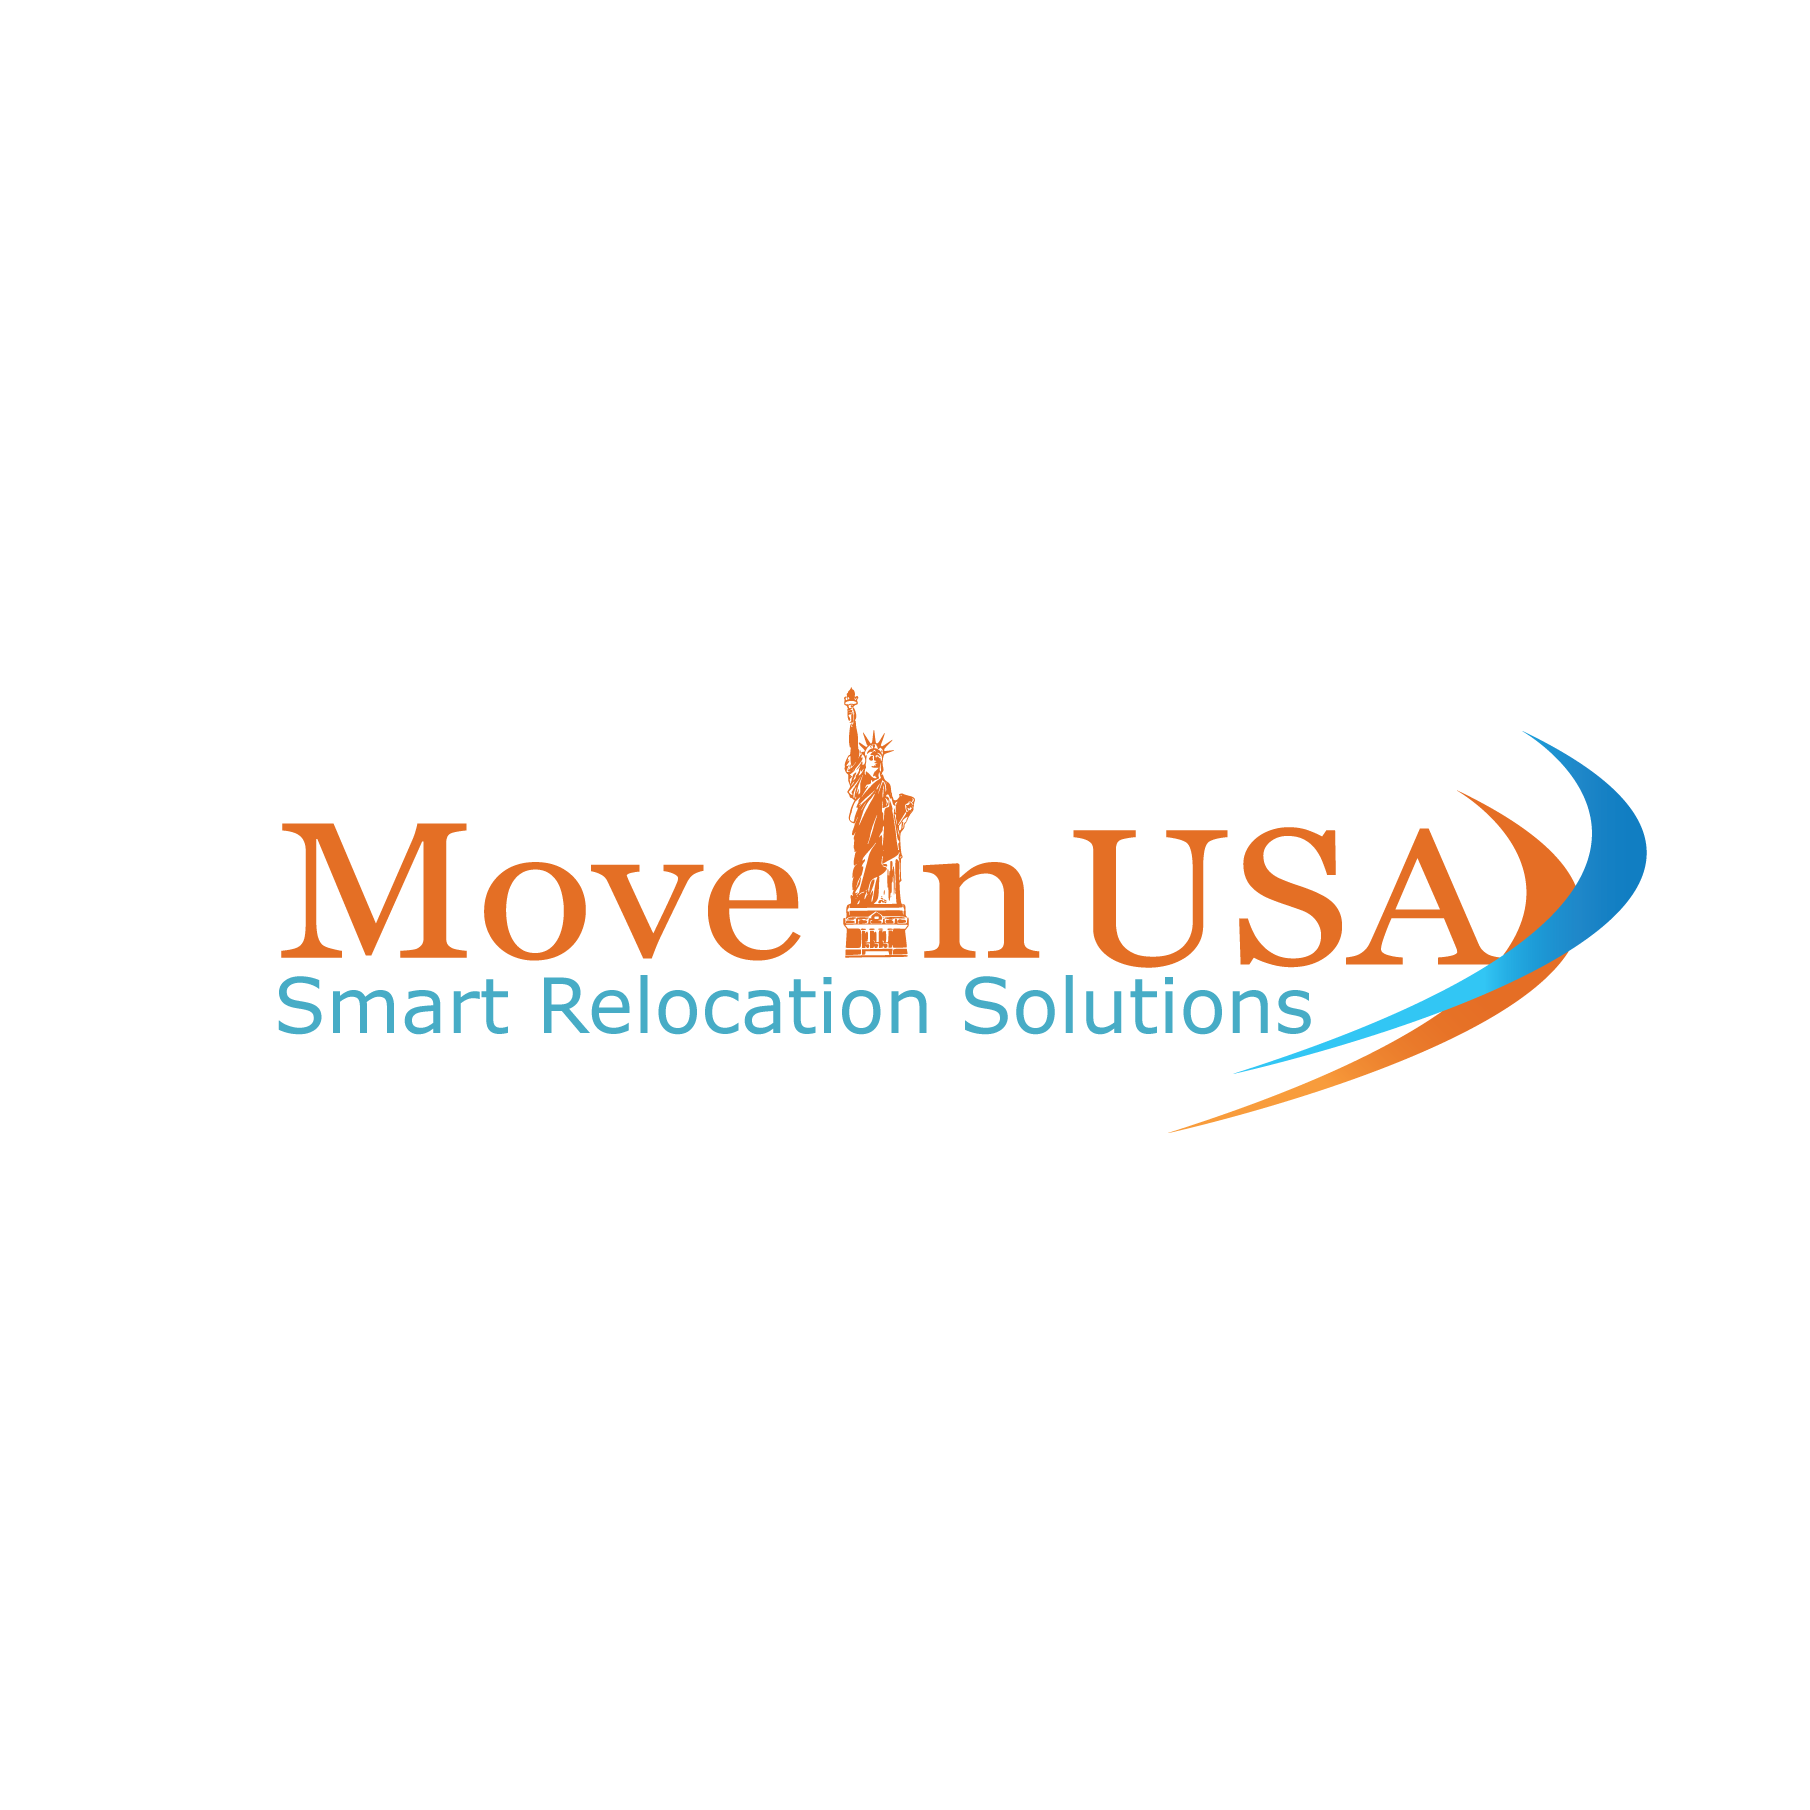 MOVE IN USA, LLC